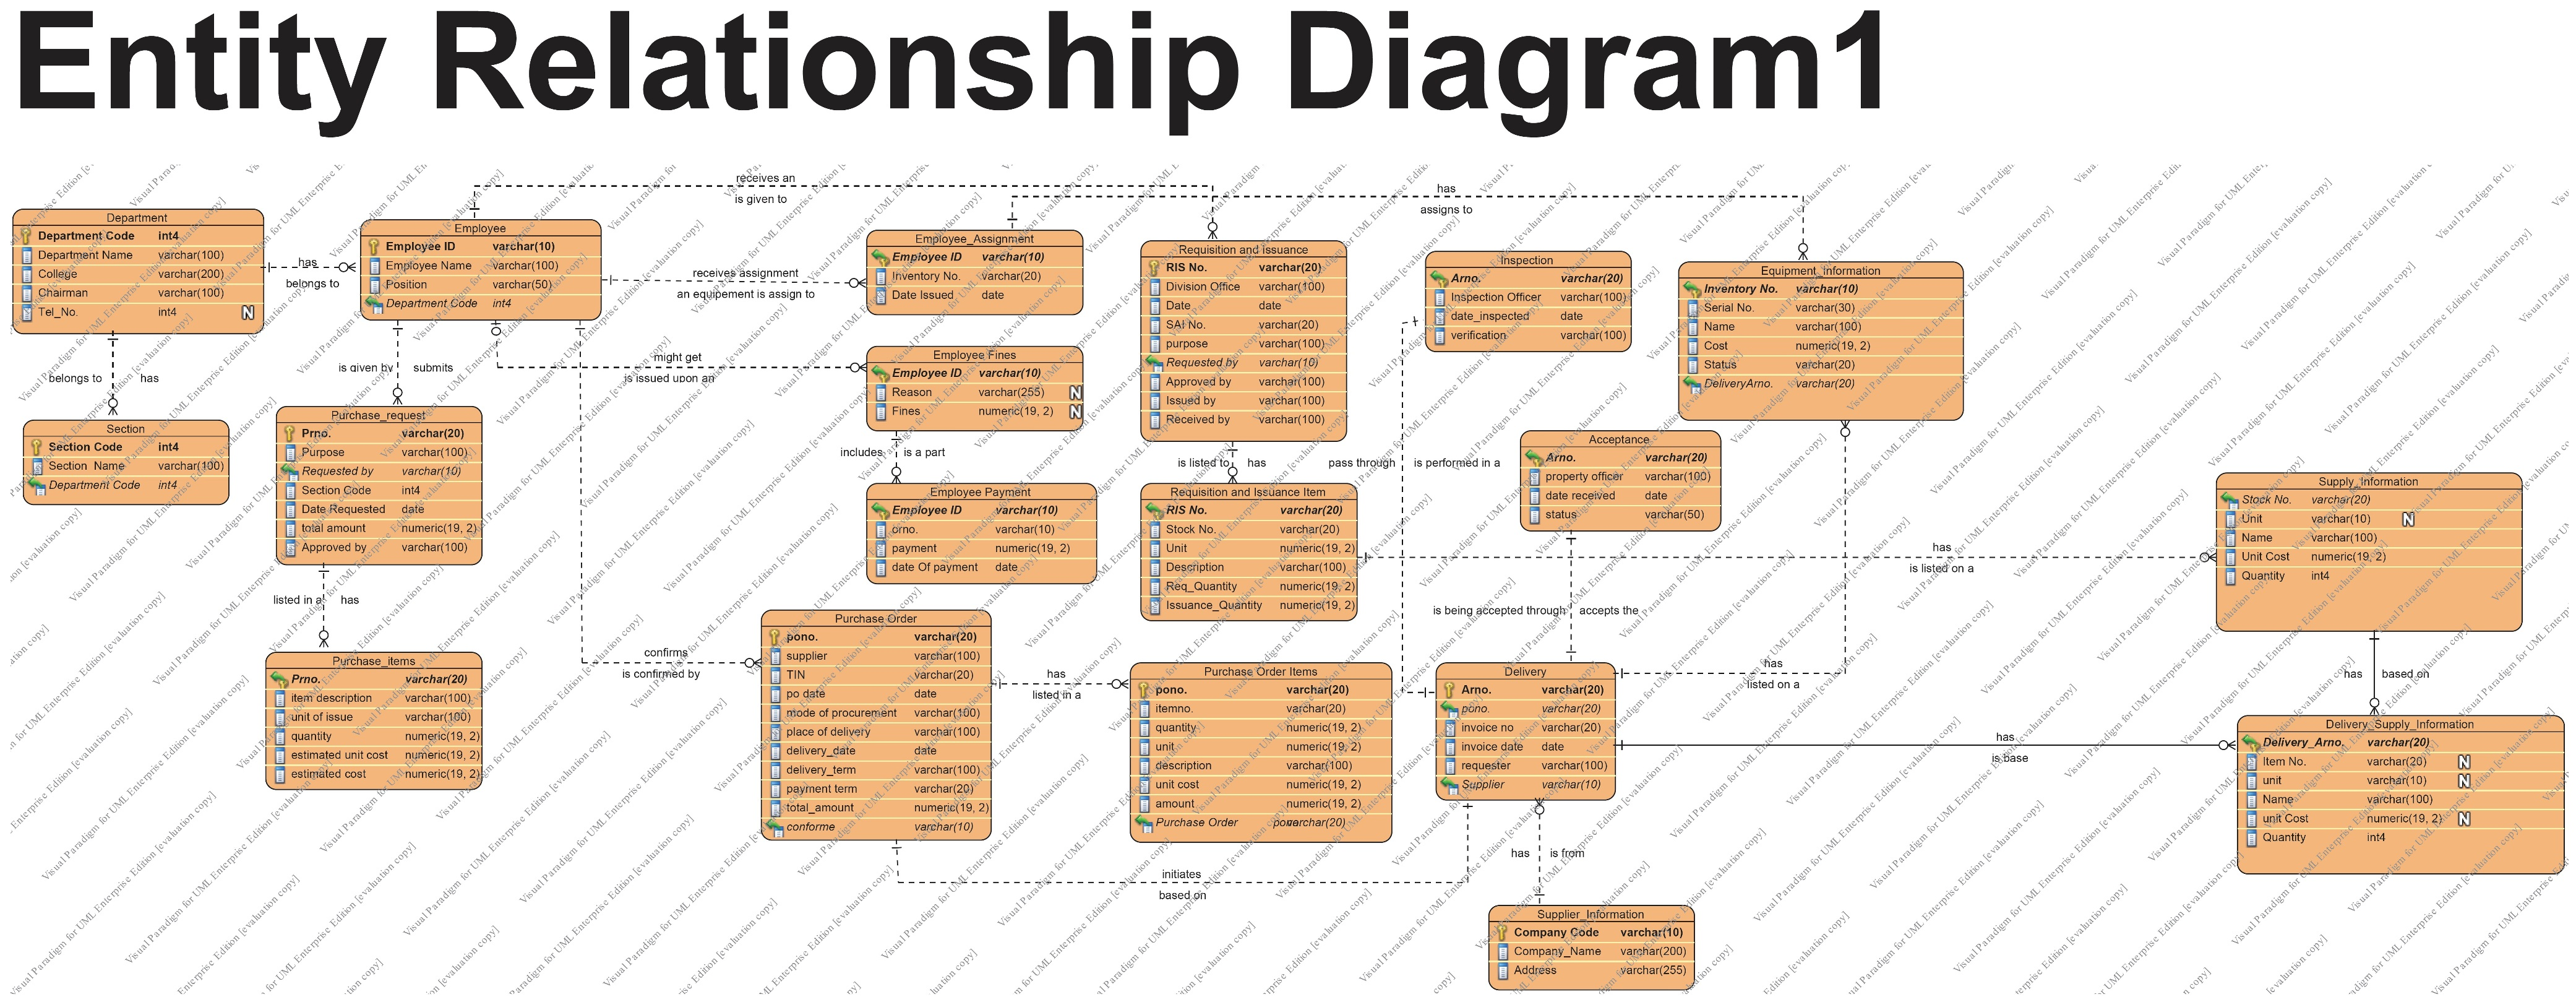 entity relationship diagram inventory motorcycle wiring symbols dfd 6th version plus use case and erd  august 5 2012